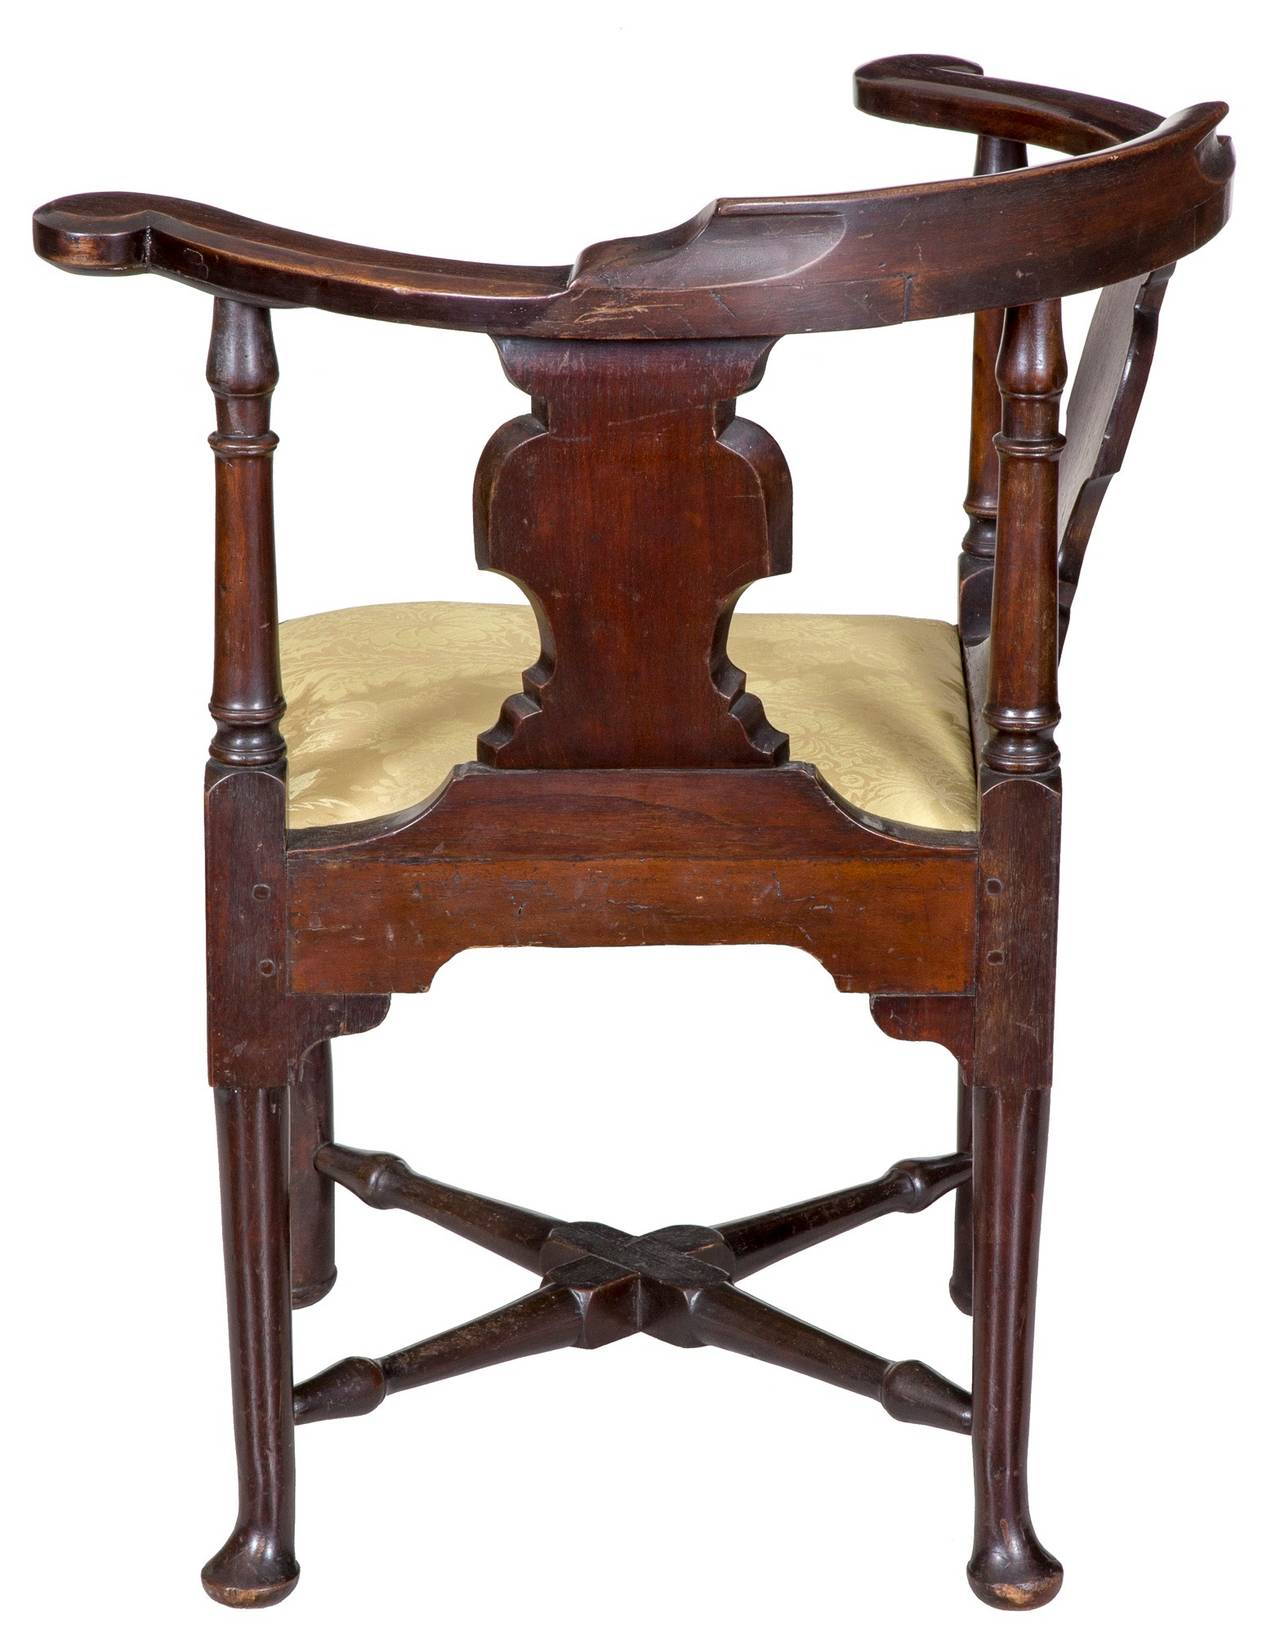 Mahogany Queen Anne Corner Chair with Horseshoe Seat Boston circa